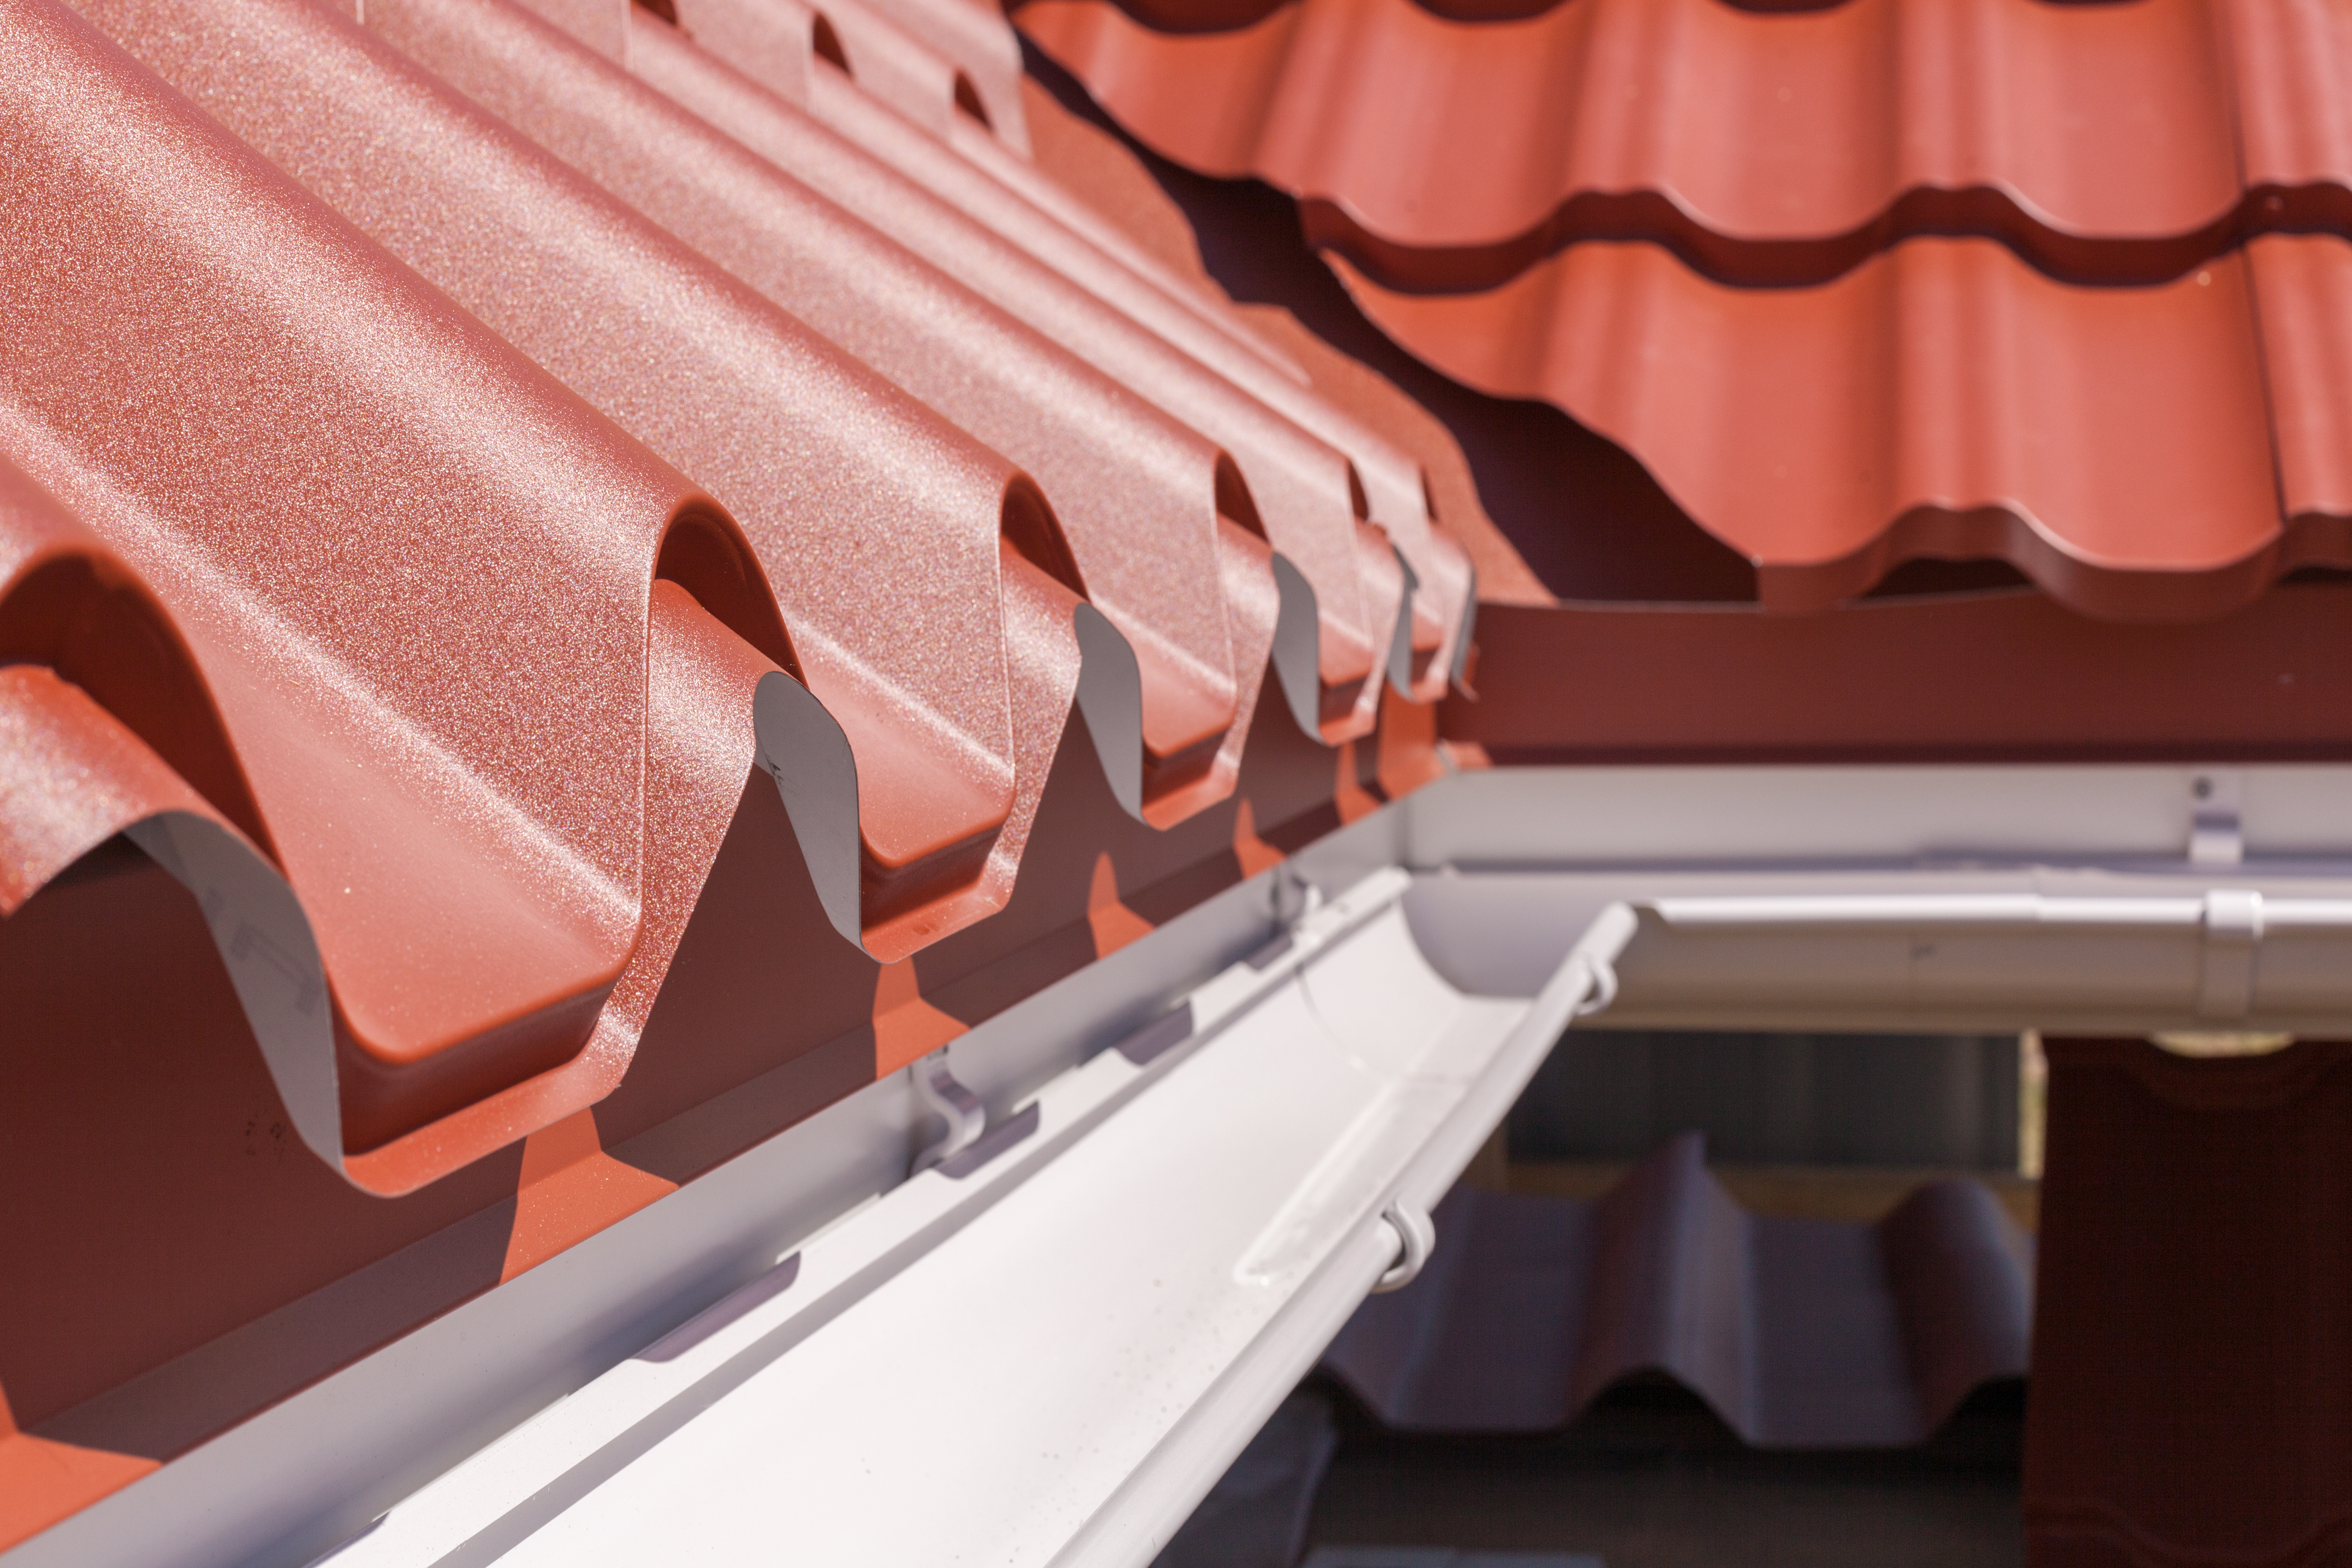 Roof Tiles and Gutter | RoofingContractorPittsburgh.com